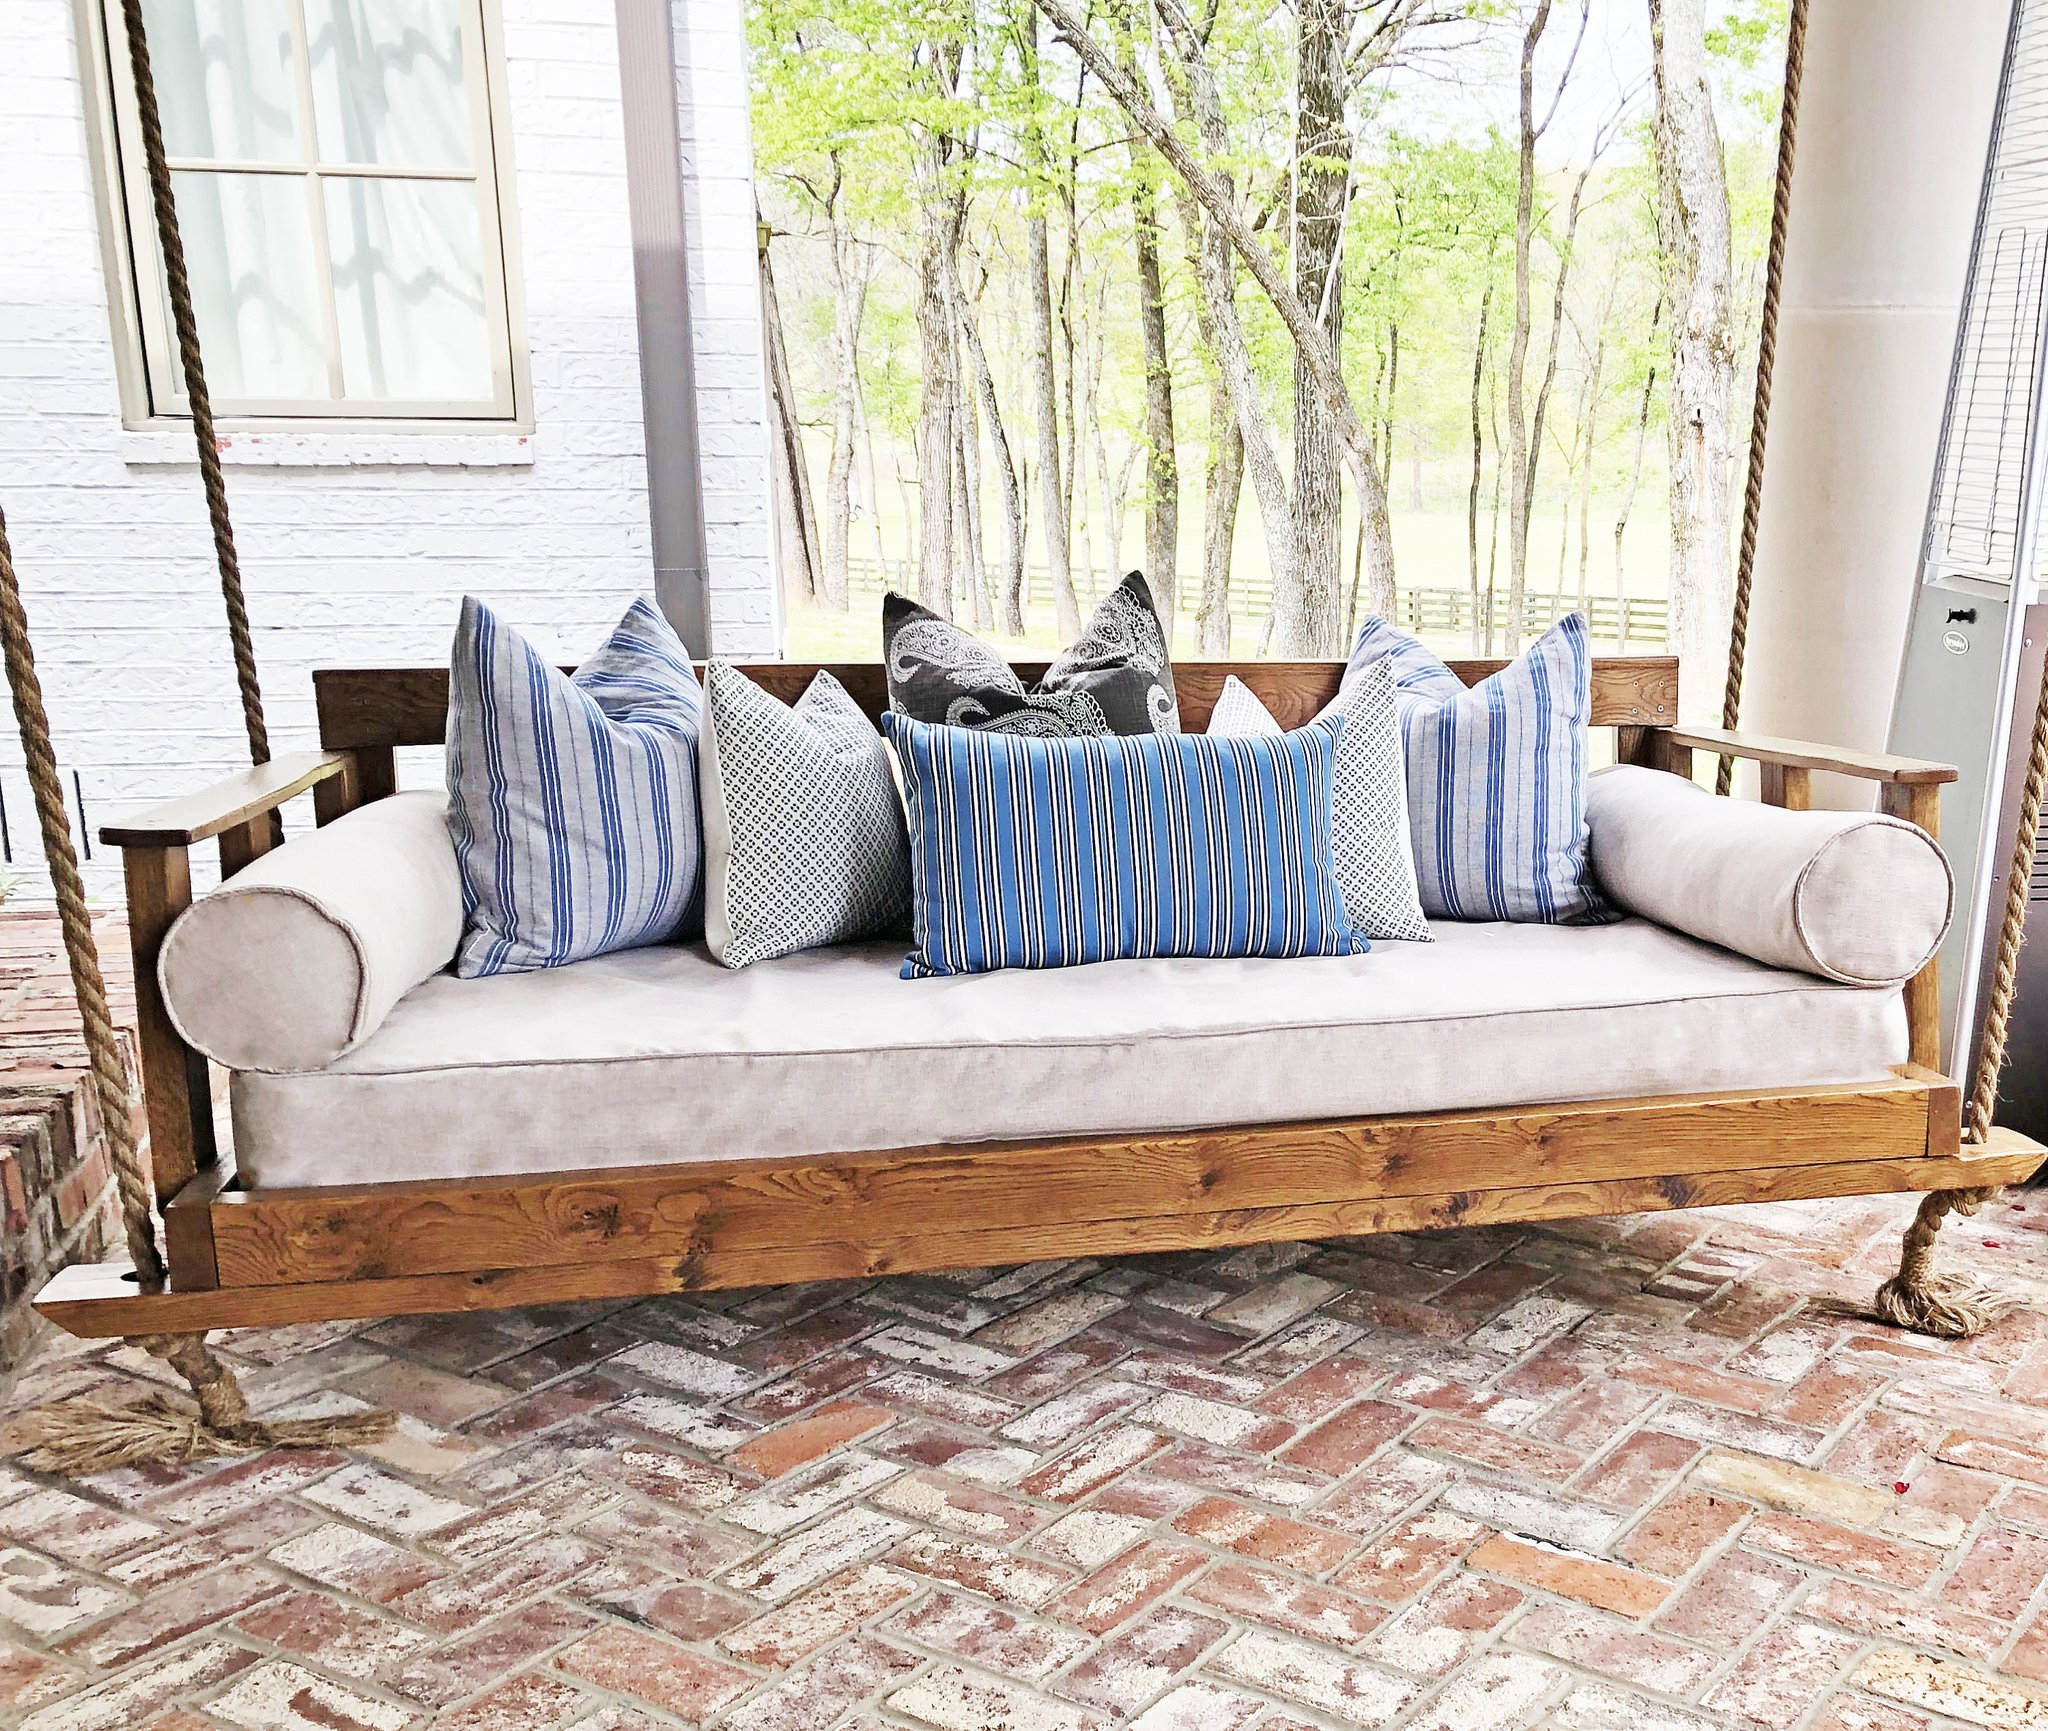 Trendy Cushion: Charming Daybed Cushion For Indoor And Outdoor Within Ellanti Patio Daybeds With Cushions (View 11 of 25)